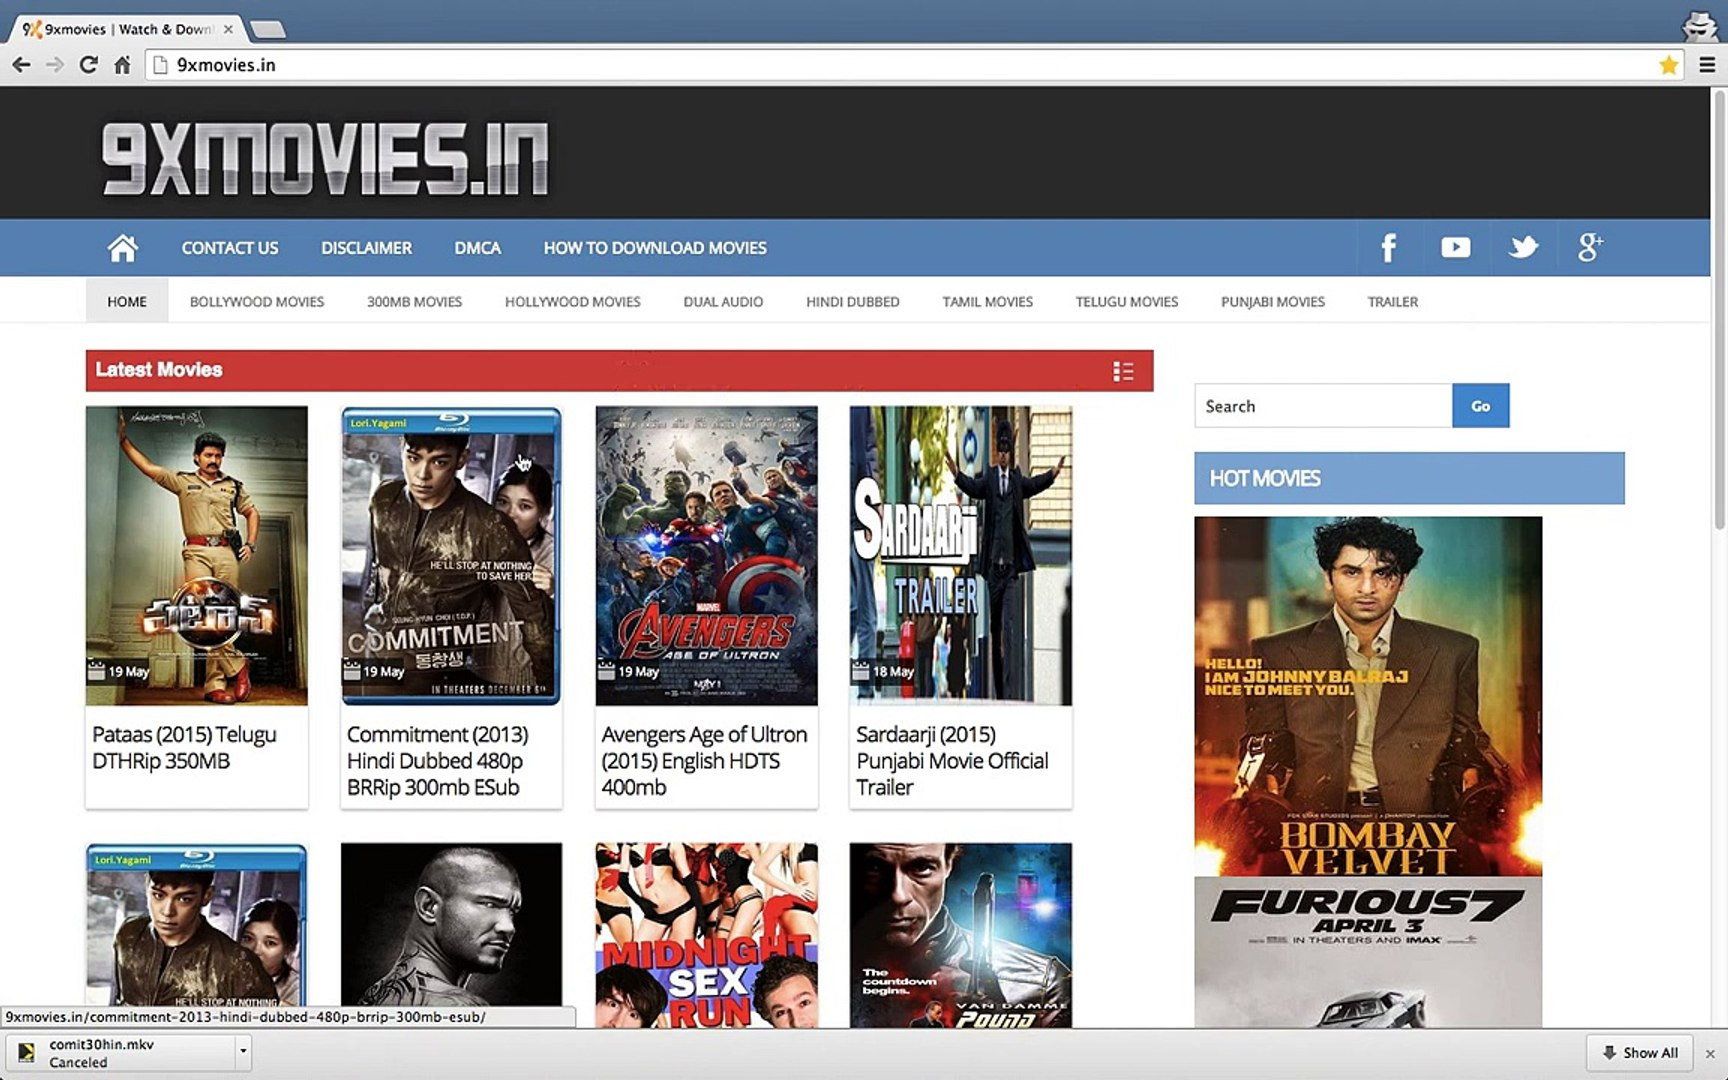 How to Download HD Movies, Hindi Dubbed, Dual Audio Movies from 9xmovies.in